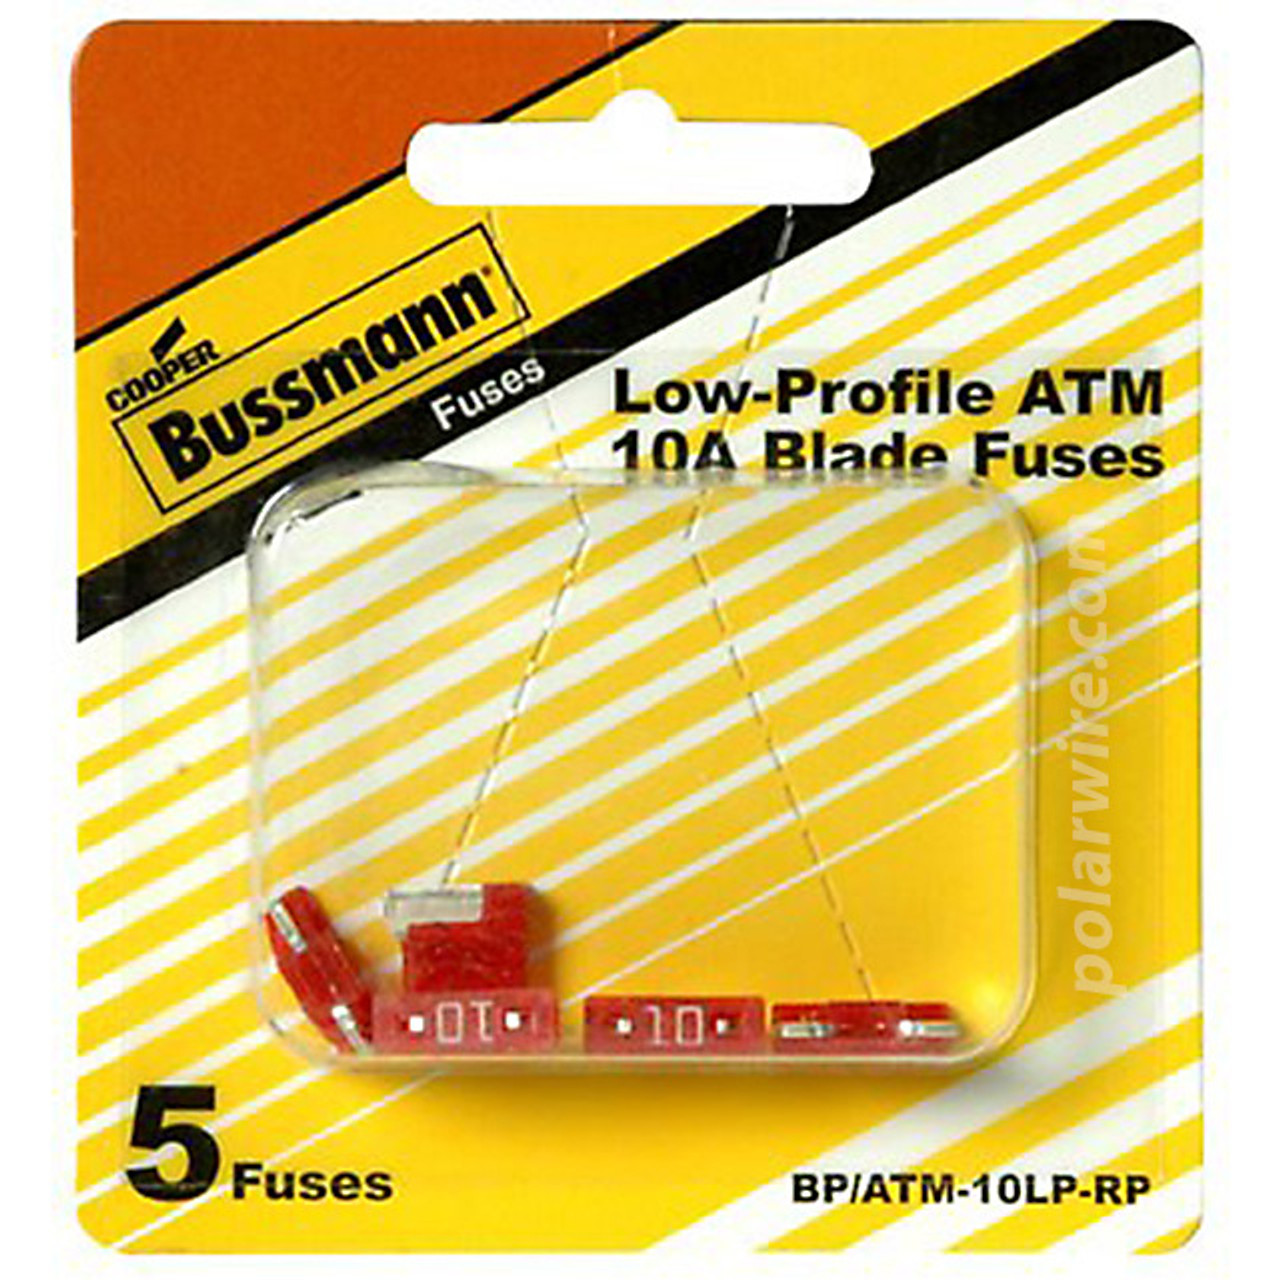 FUSE 10 AMP LOW PROFILE ATM MINI-BLADE FUSE 5 PK